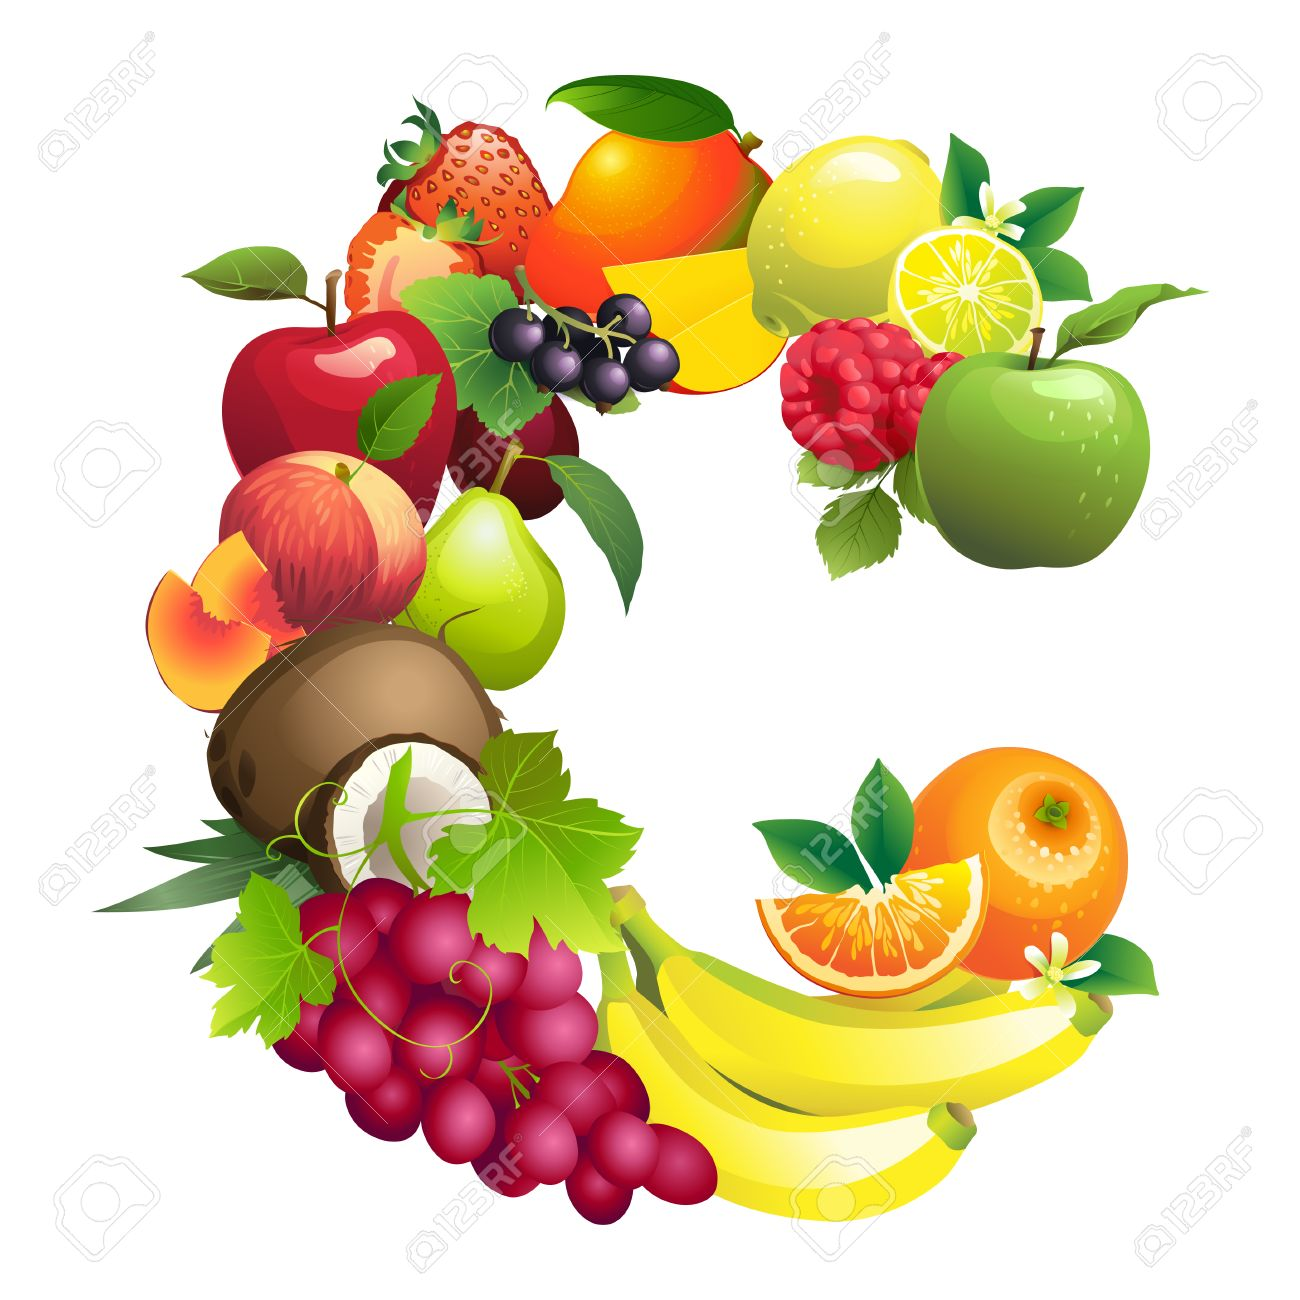 Vector Illustration Letter C Composed Of Different Fruits With